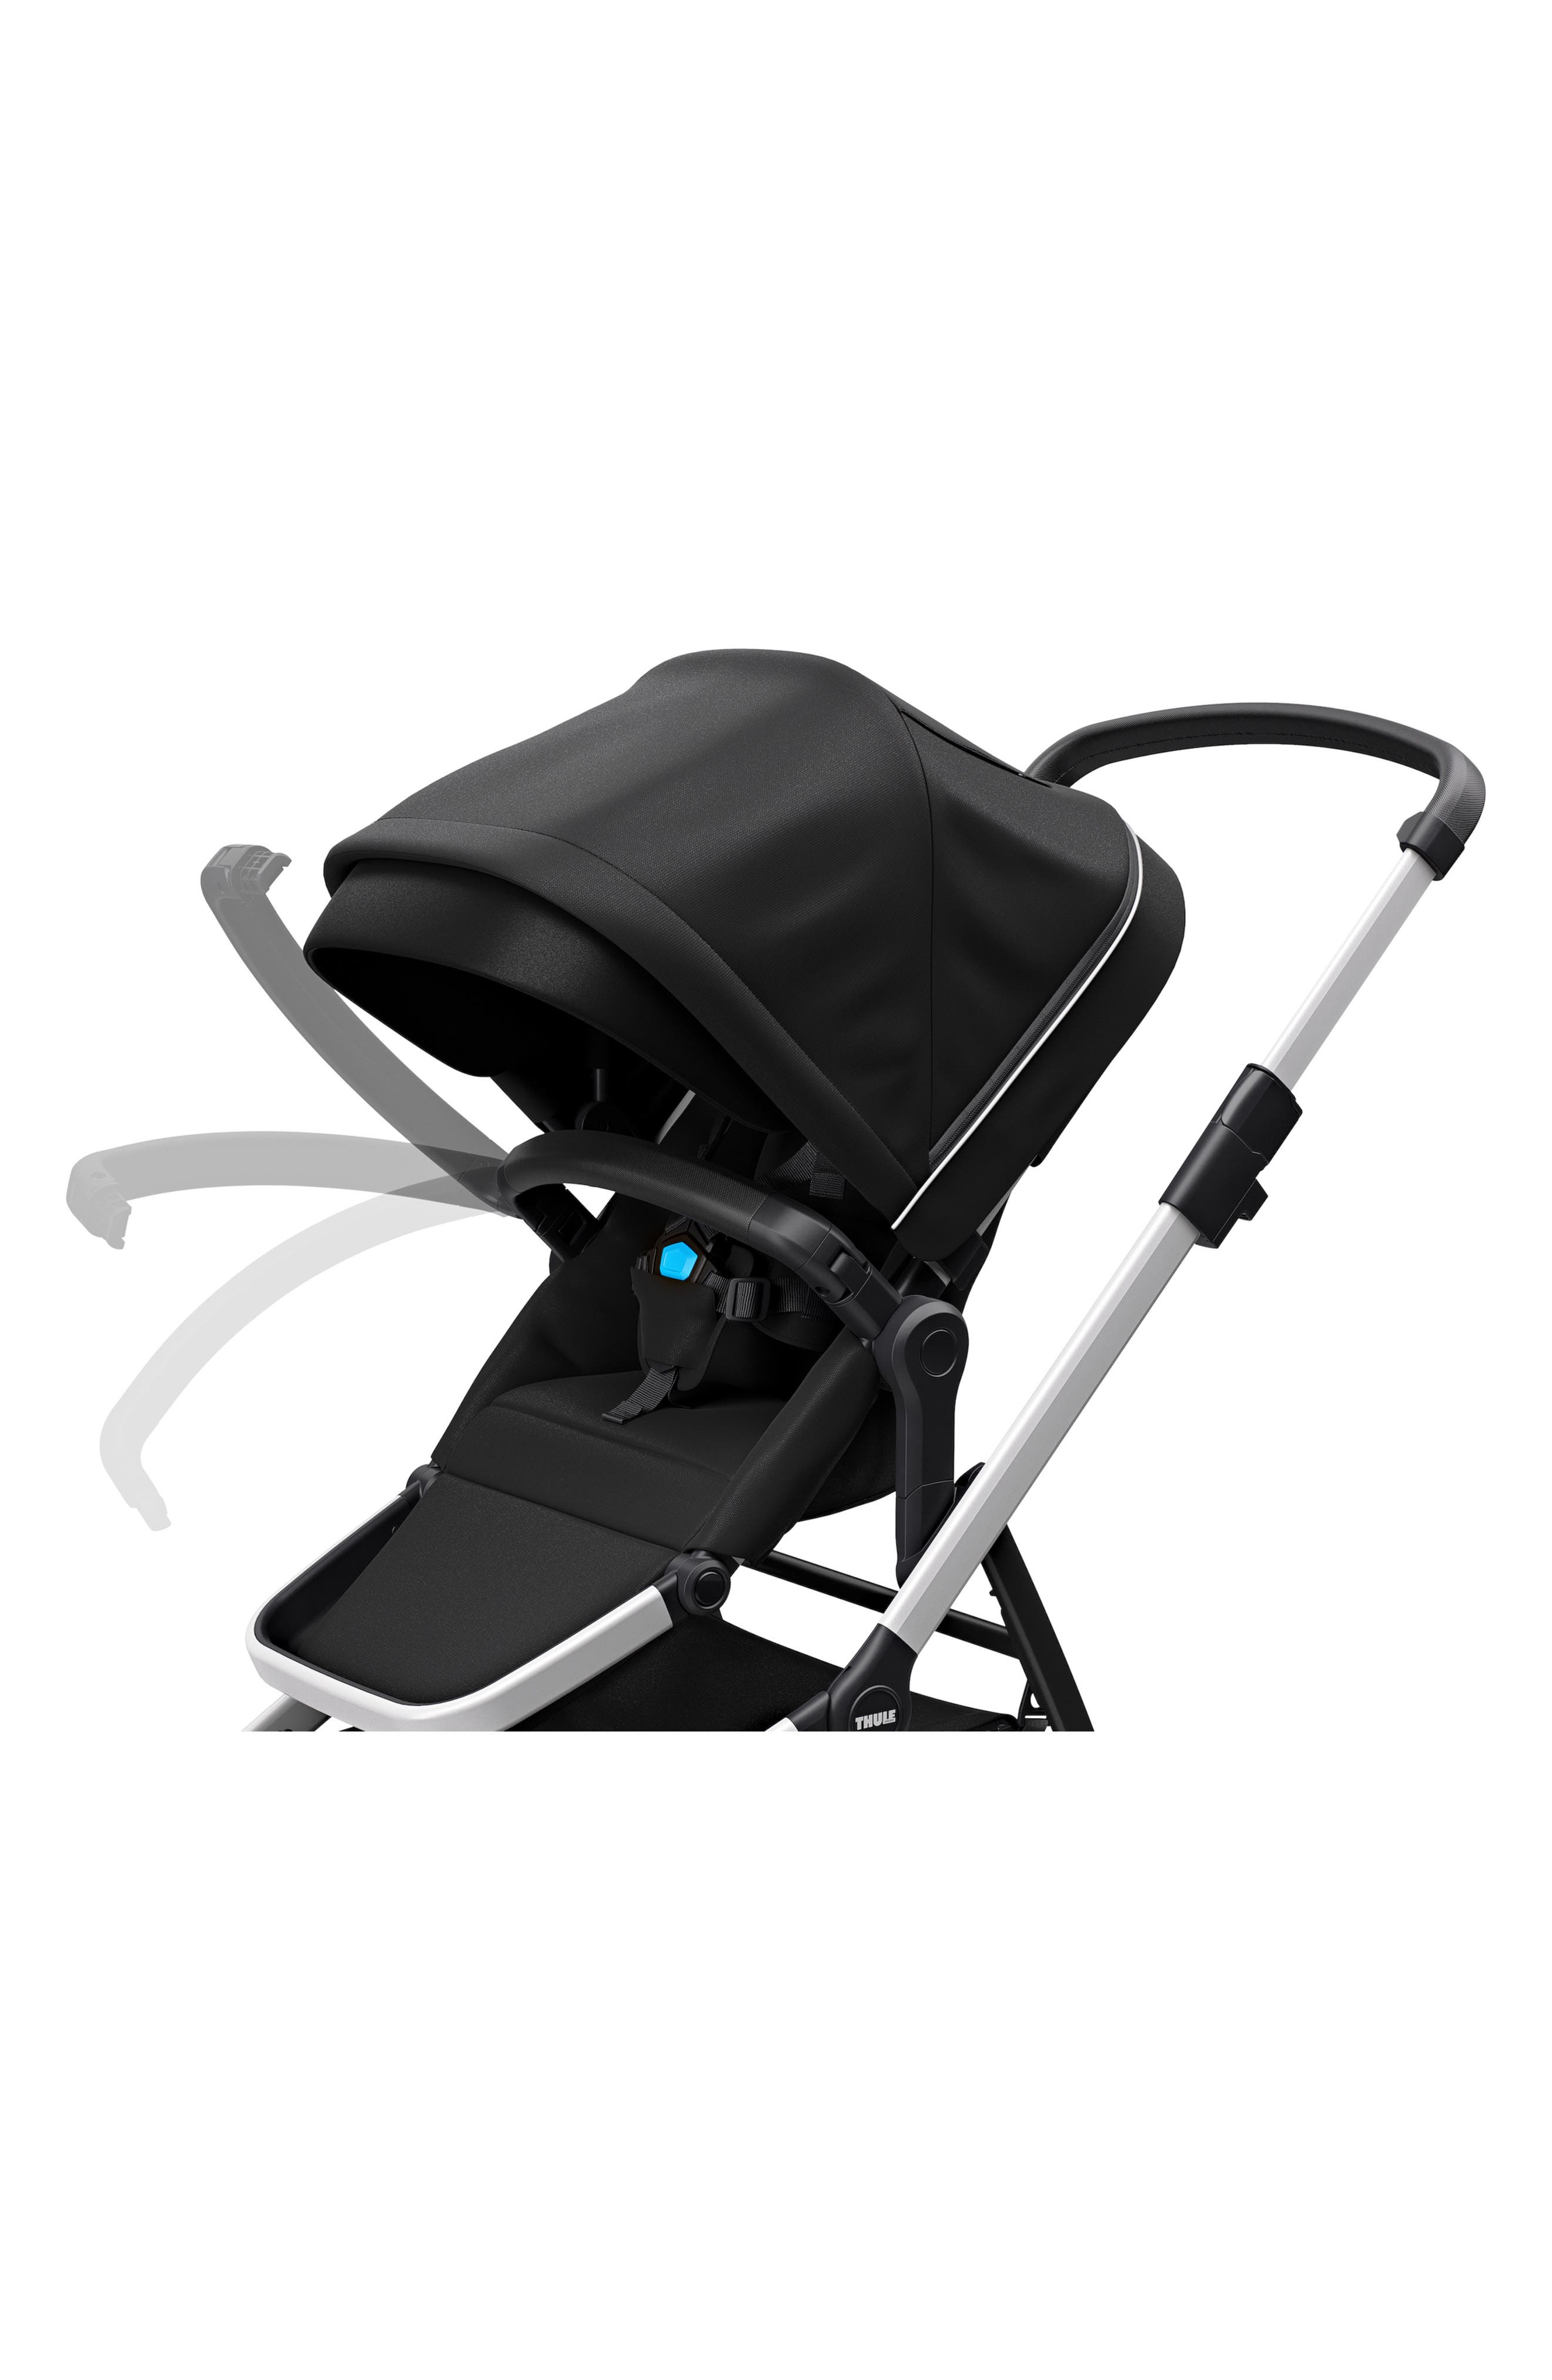 2018 Sleek City Stroller,                             Alternate thumbnail 7, color,                             BLACK